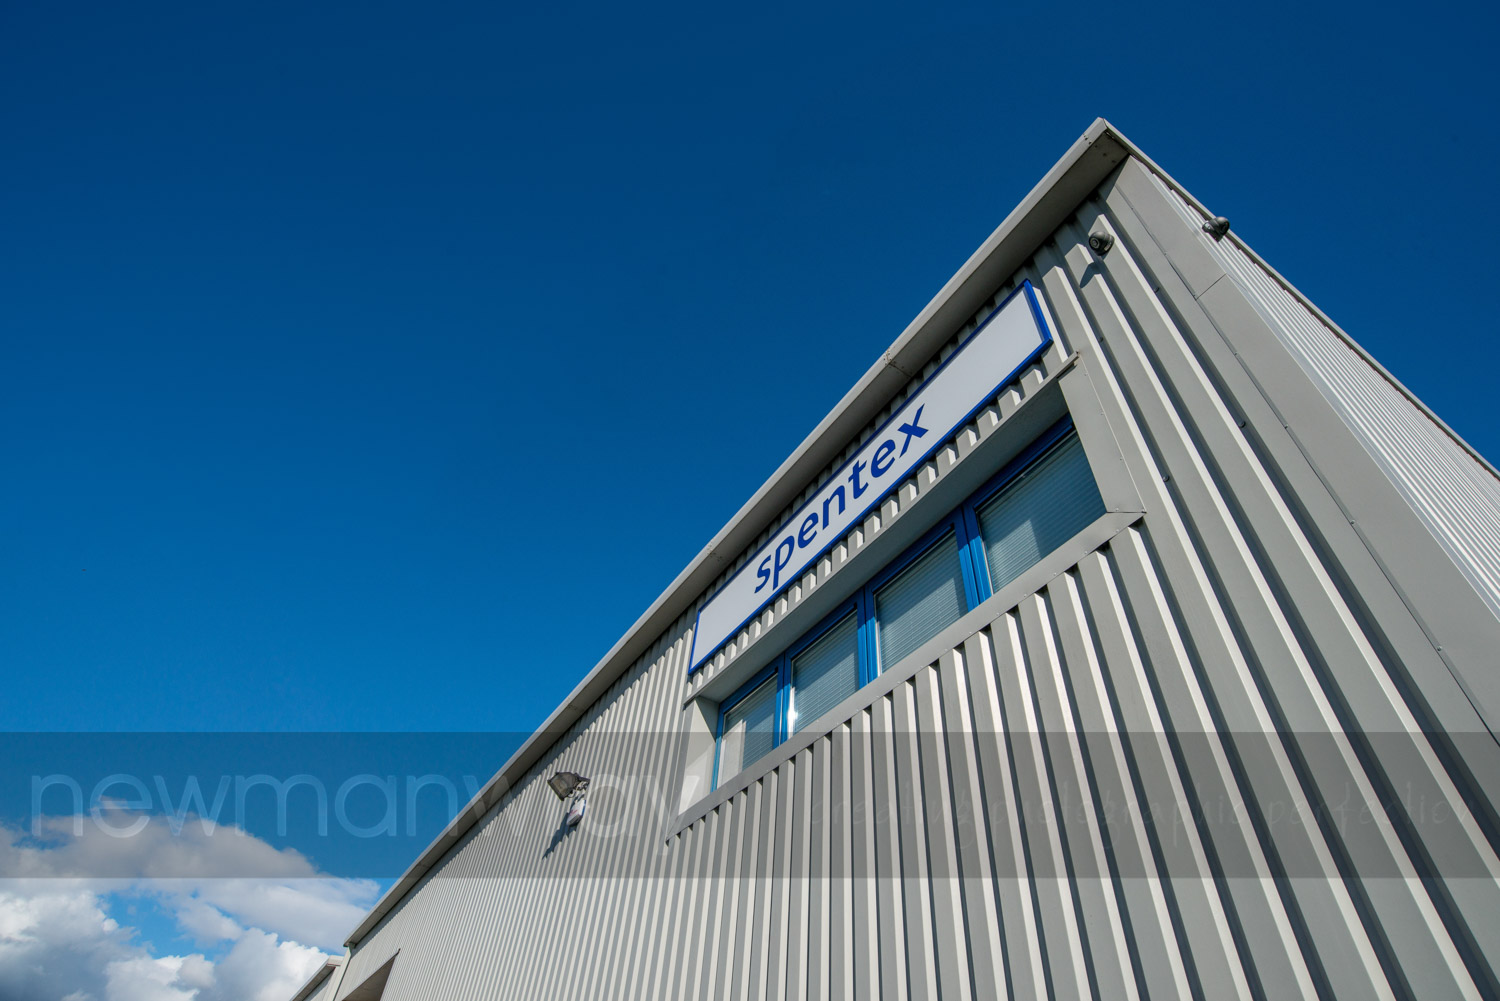 tadcaster_advertising_photography-30